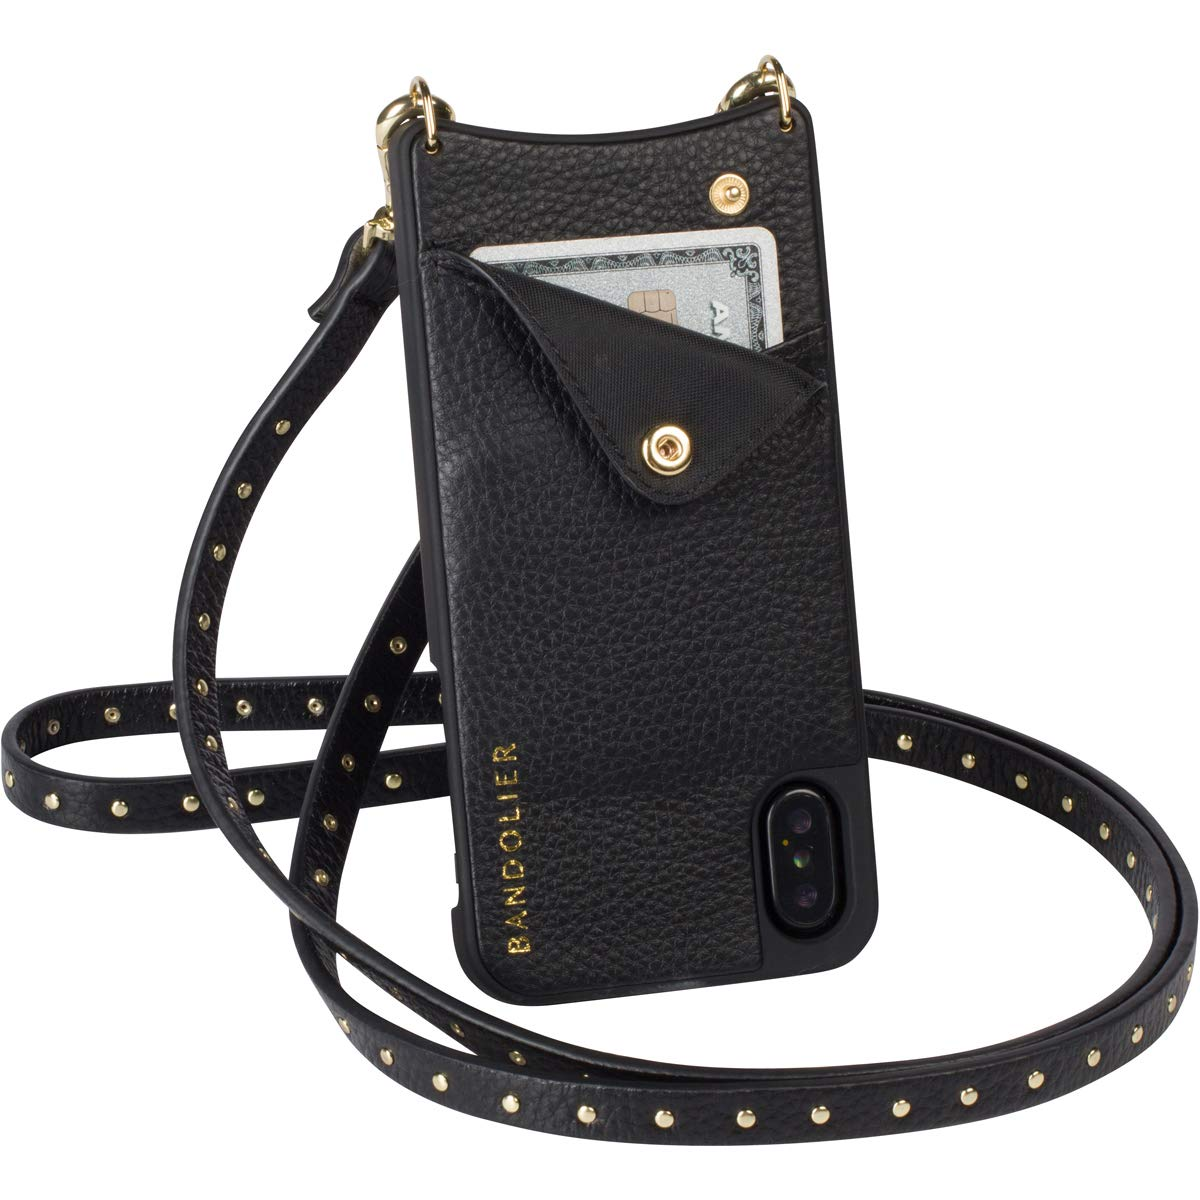 Bandolier [Nicole] Crossbody Phone Case and Wallet - Compatible with iPhone 8/7 / 6 - Black Leather with Gold Accent by Bandolier (Image #2)